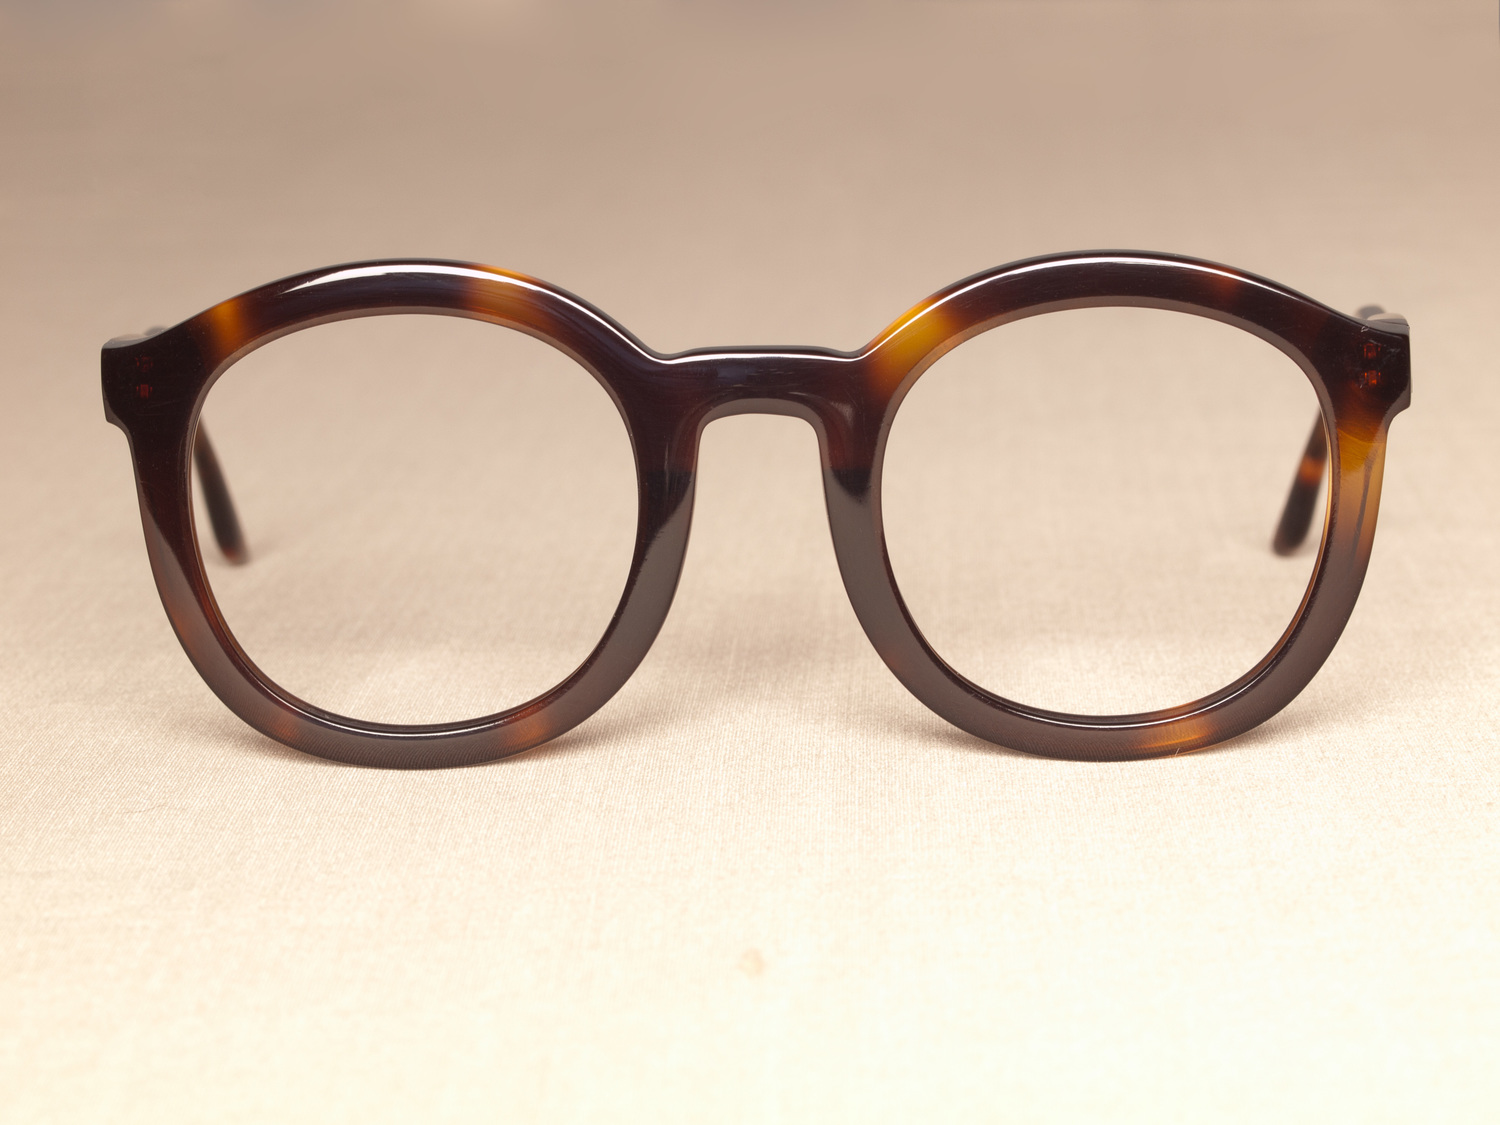 Indivijual-Custom-Glasses-2.jpg